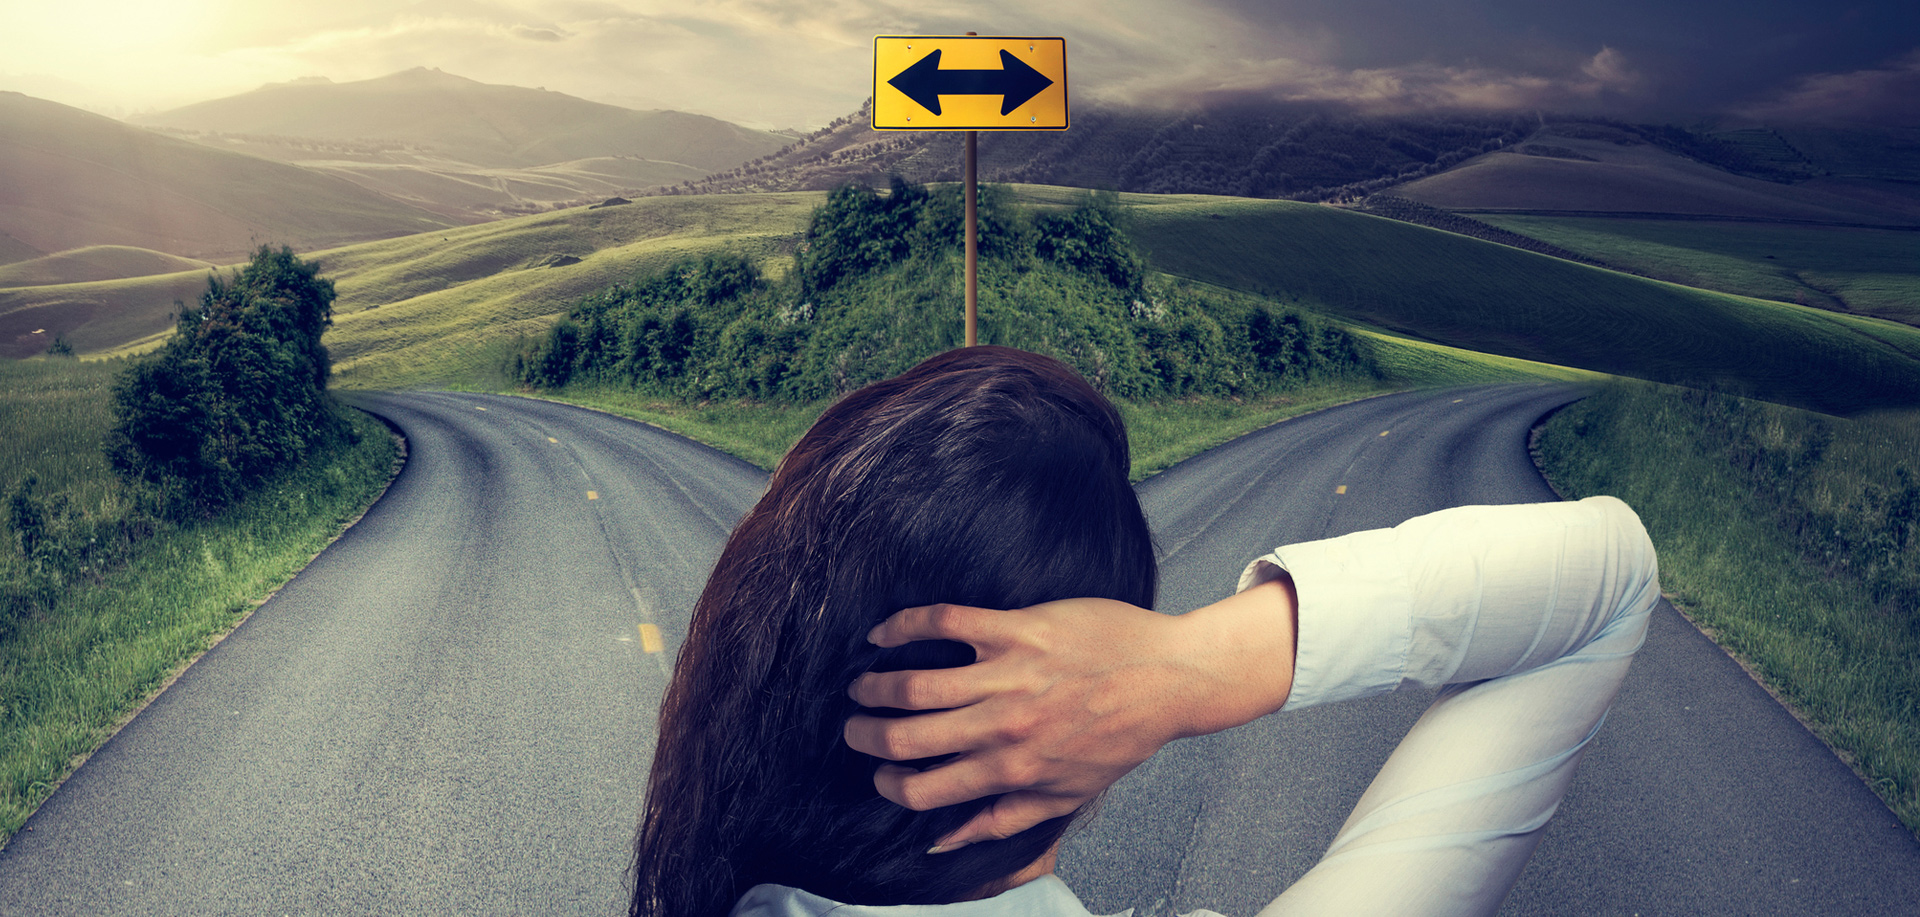 A graphic of a young woman facing a decision between two roads